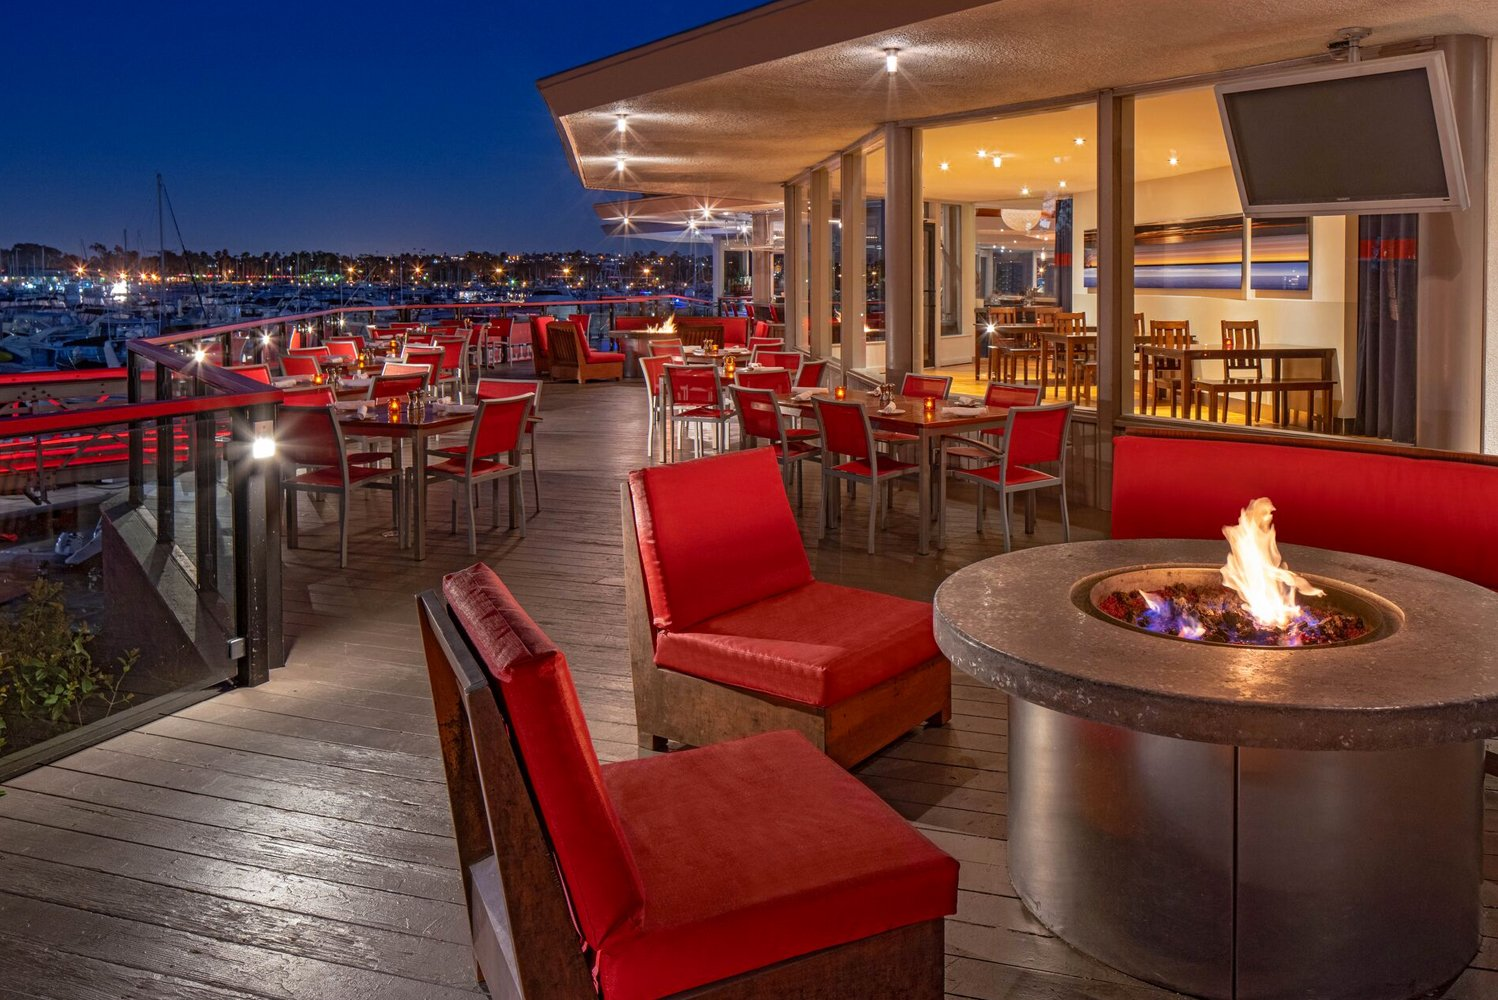 Pelican's on the Bay, formally SWIM Bar & Lounge, is now open and located at the hotel's pool deck, with both al fresco and covered seating.